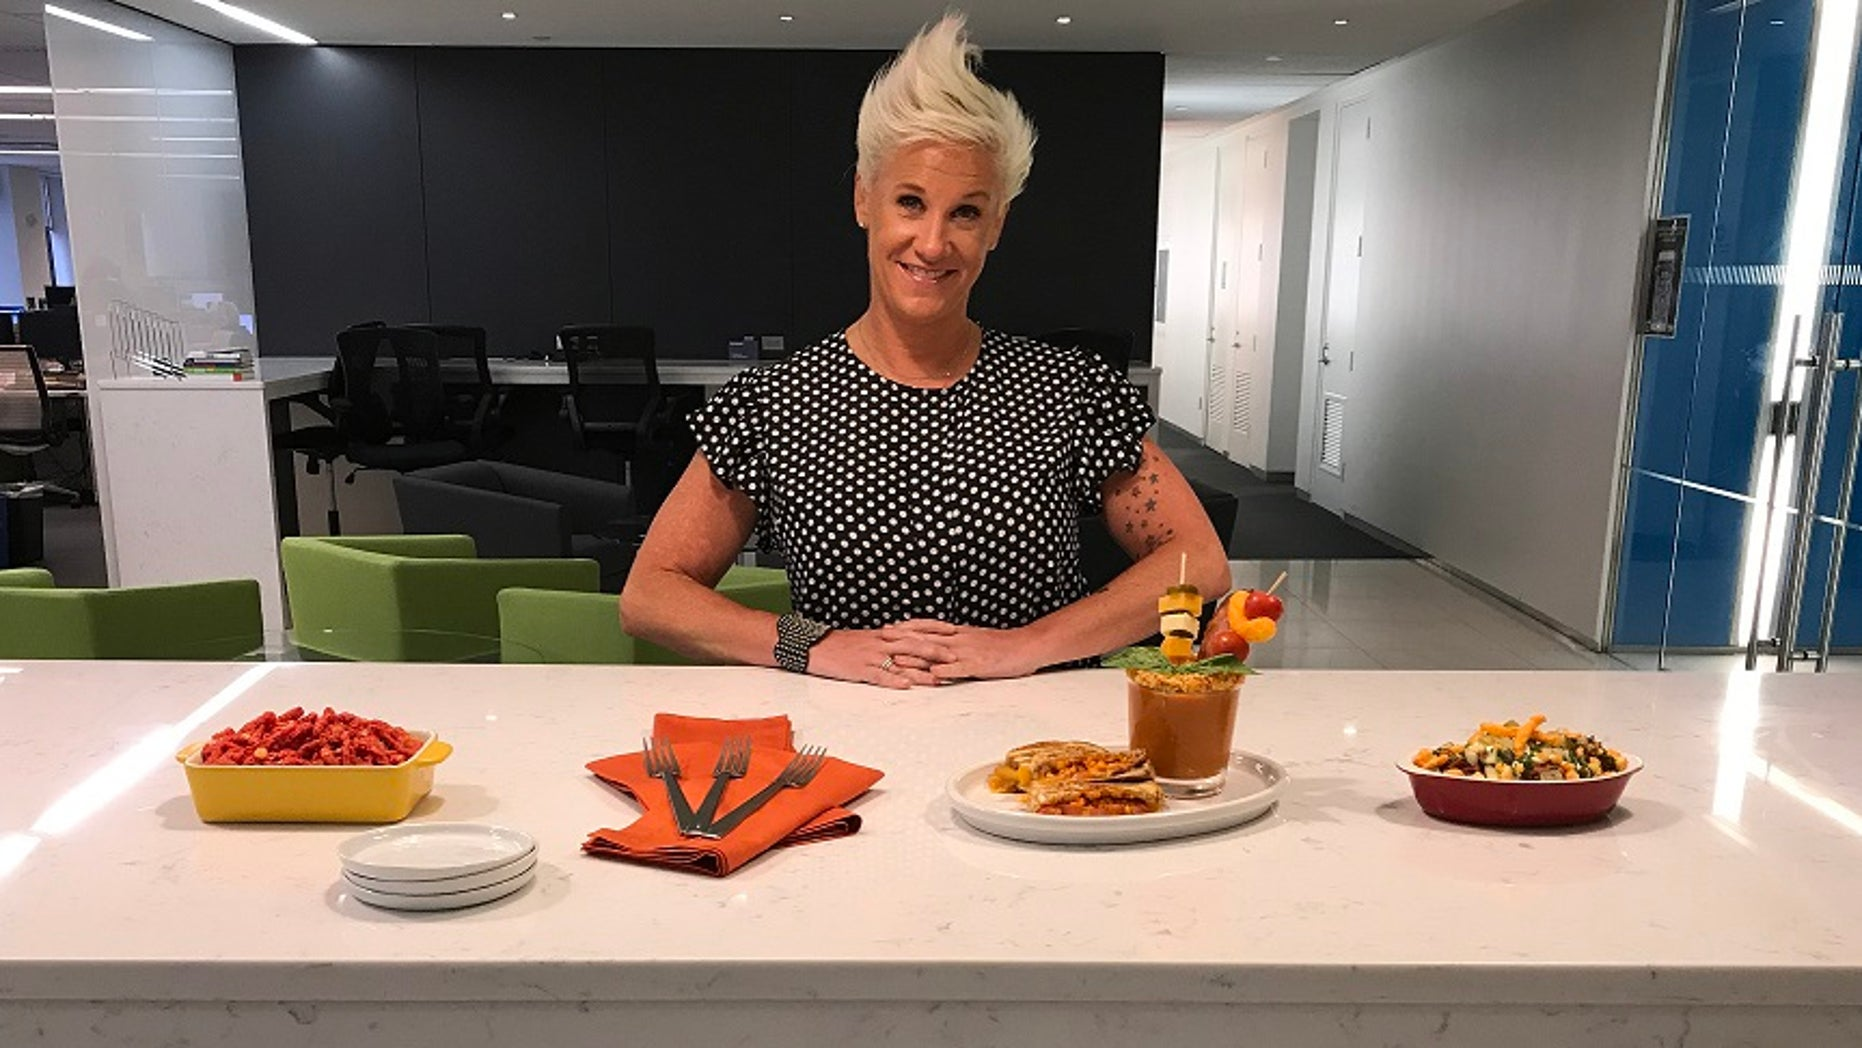 Celebrity chef Anne Burrell debuts some of the dishes from her new Cheetos-inspired pop-up restaurant. The Spotted Cheetah is open only this week in New York.